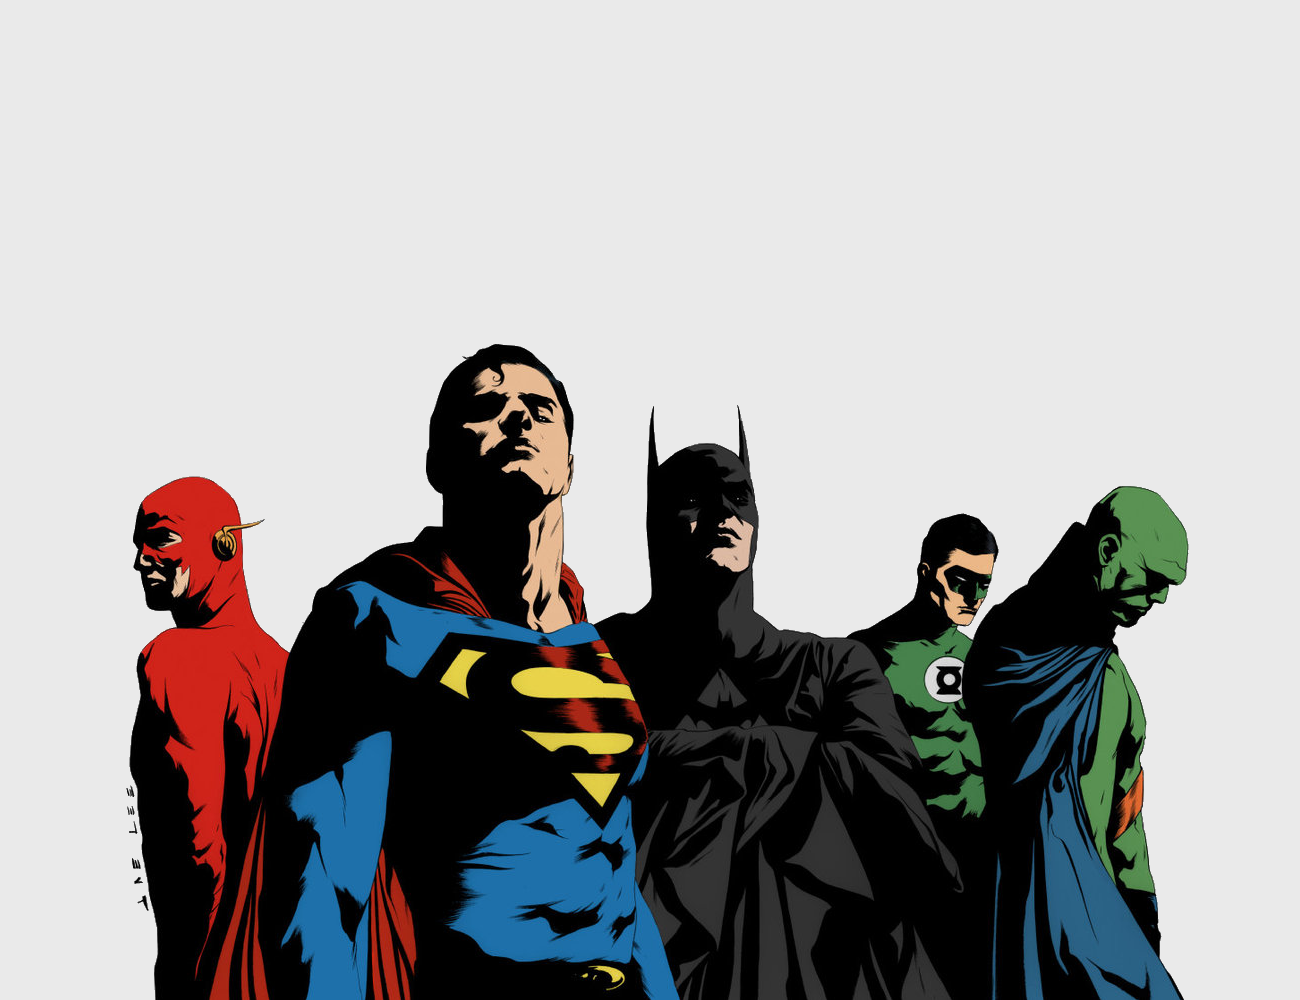 Superhero Computer Wallpapers Desktop Backgrounds 1300x1000 ID 1300x1000